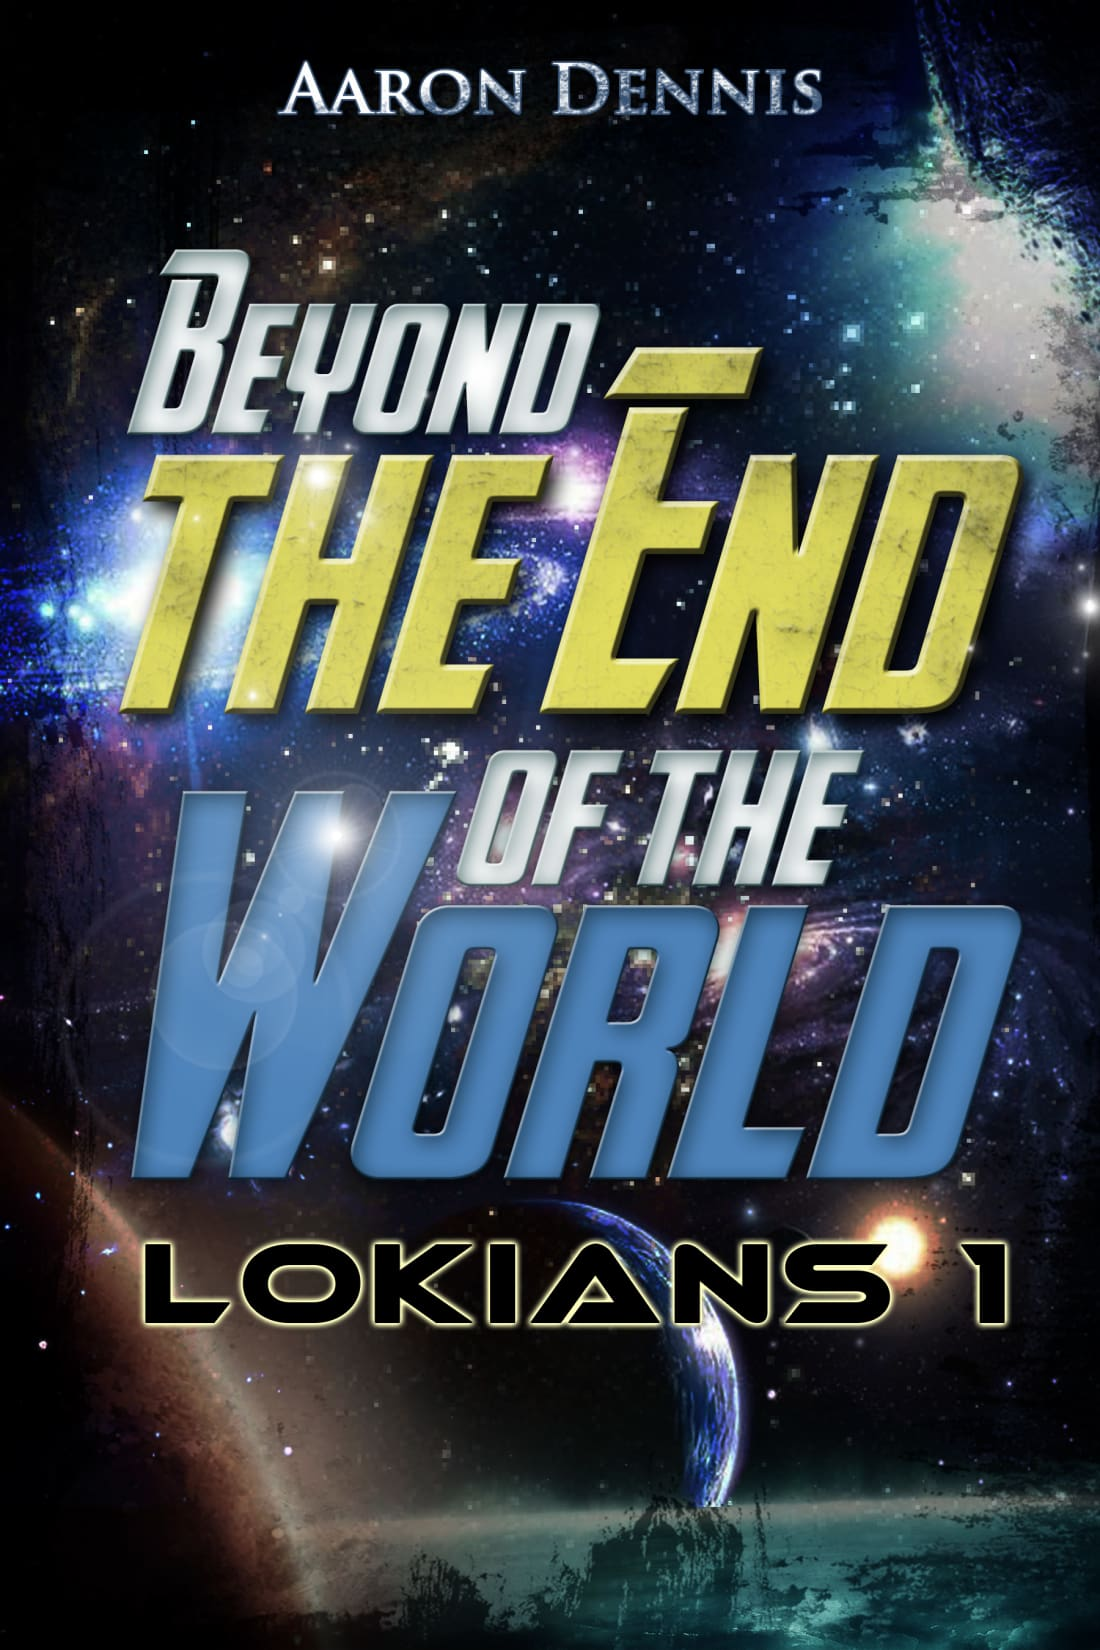 Part 6 of Beyond the End of the World, Lokians 1